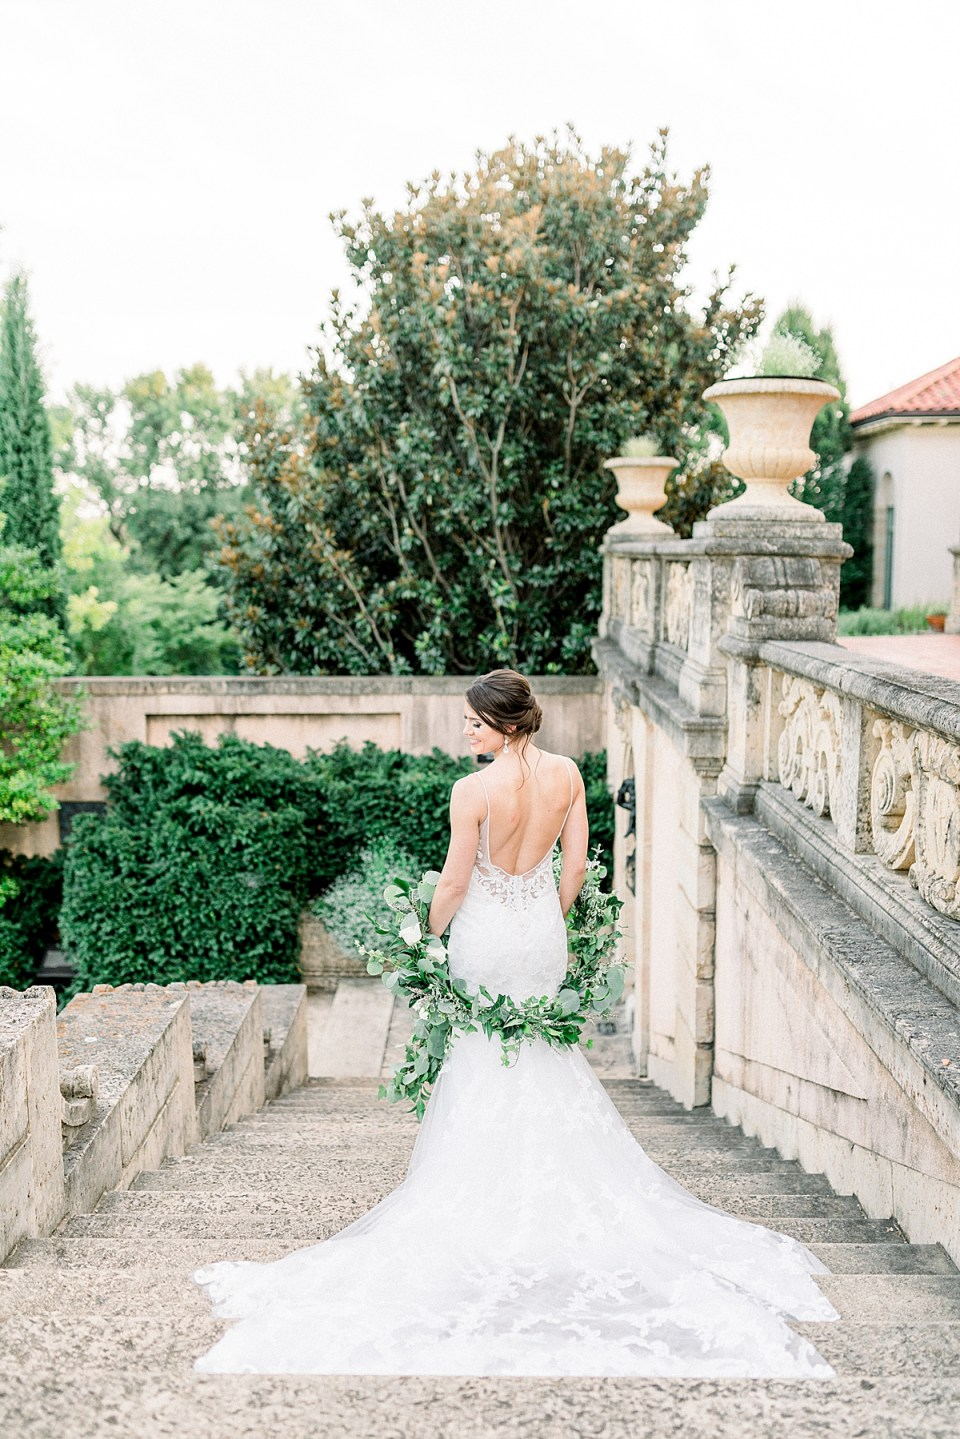 Bride standing on steps with train flowing behind her at Tulsa Philbrook bridal session